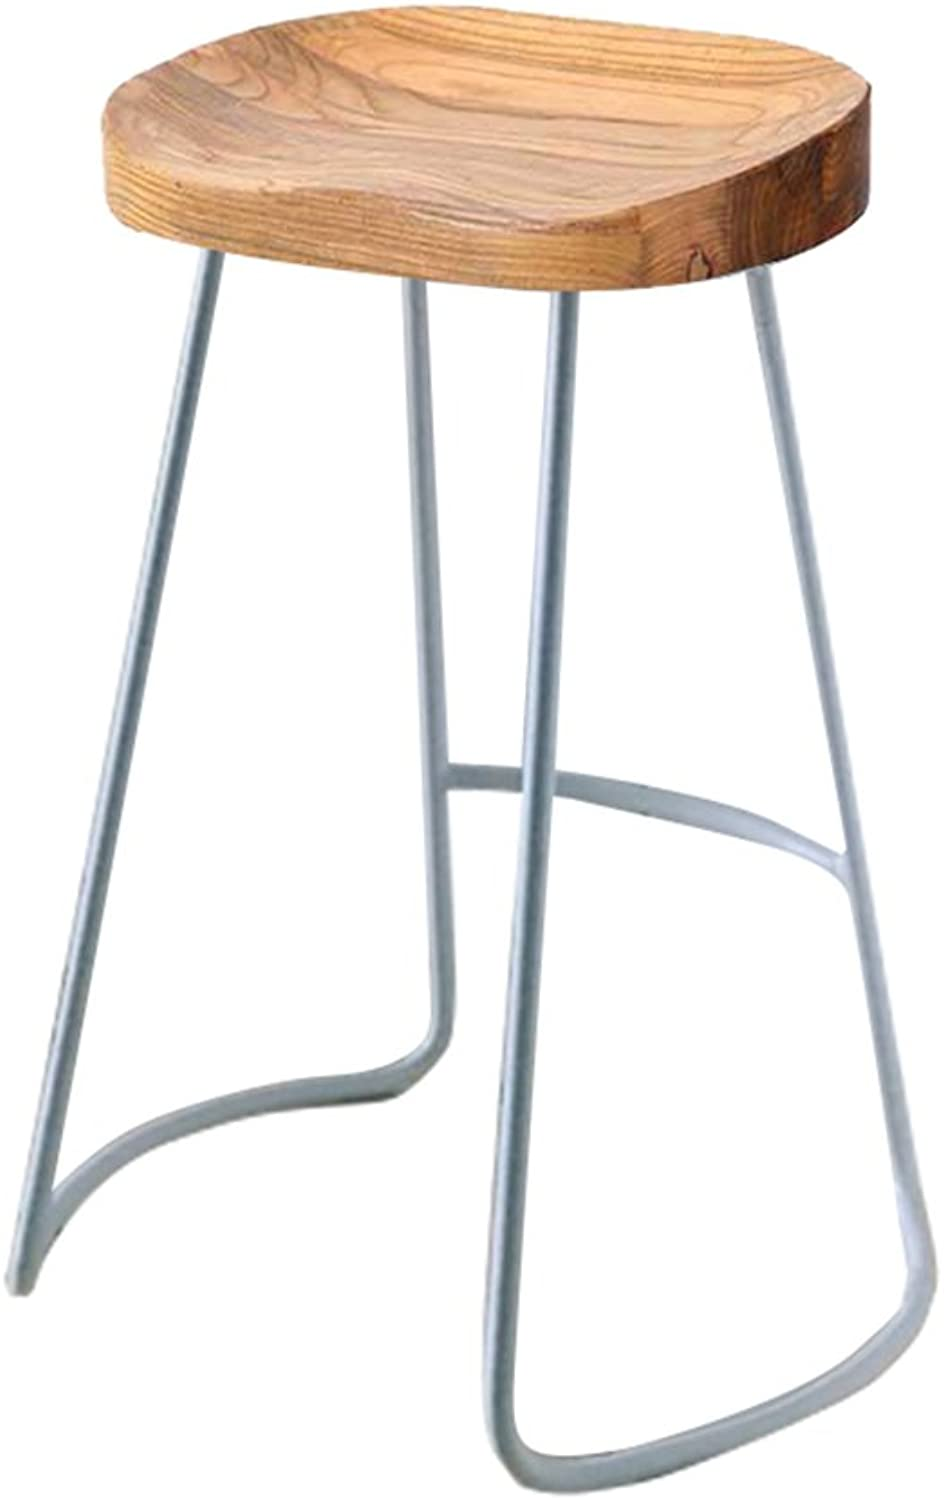 Bar Stool Home Solid Wood European high Stool Fashion Creative Cafe bar bar Stool (4 colors, 3 Sizes) (color   D, Size   65CM)